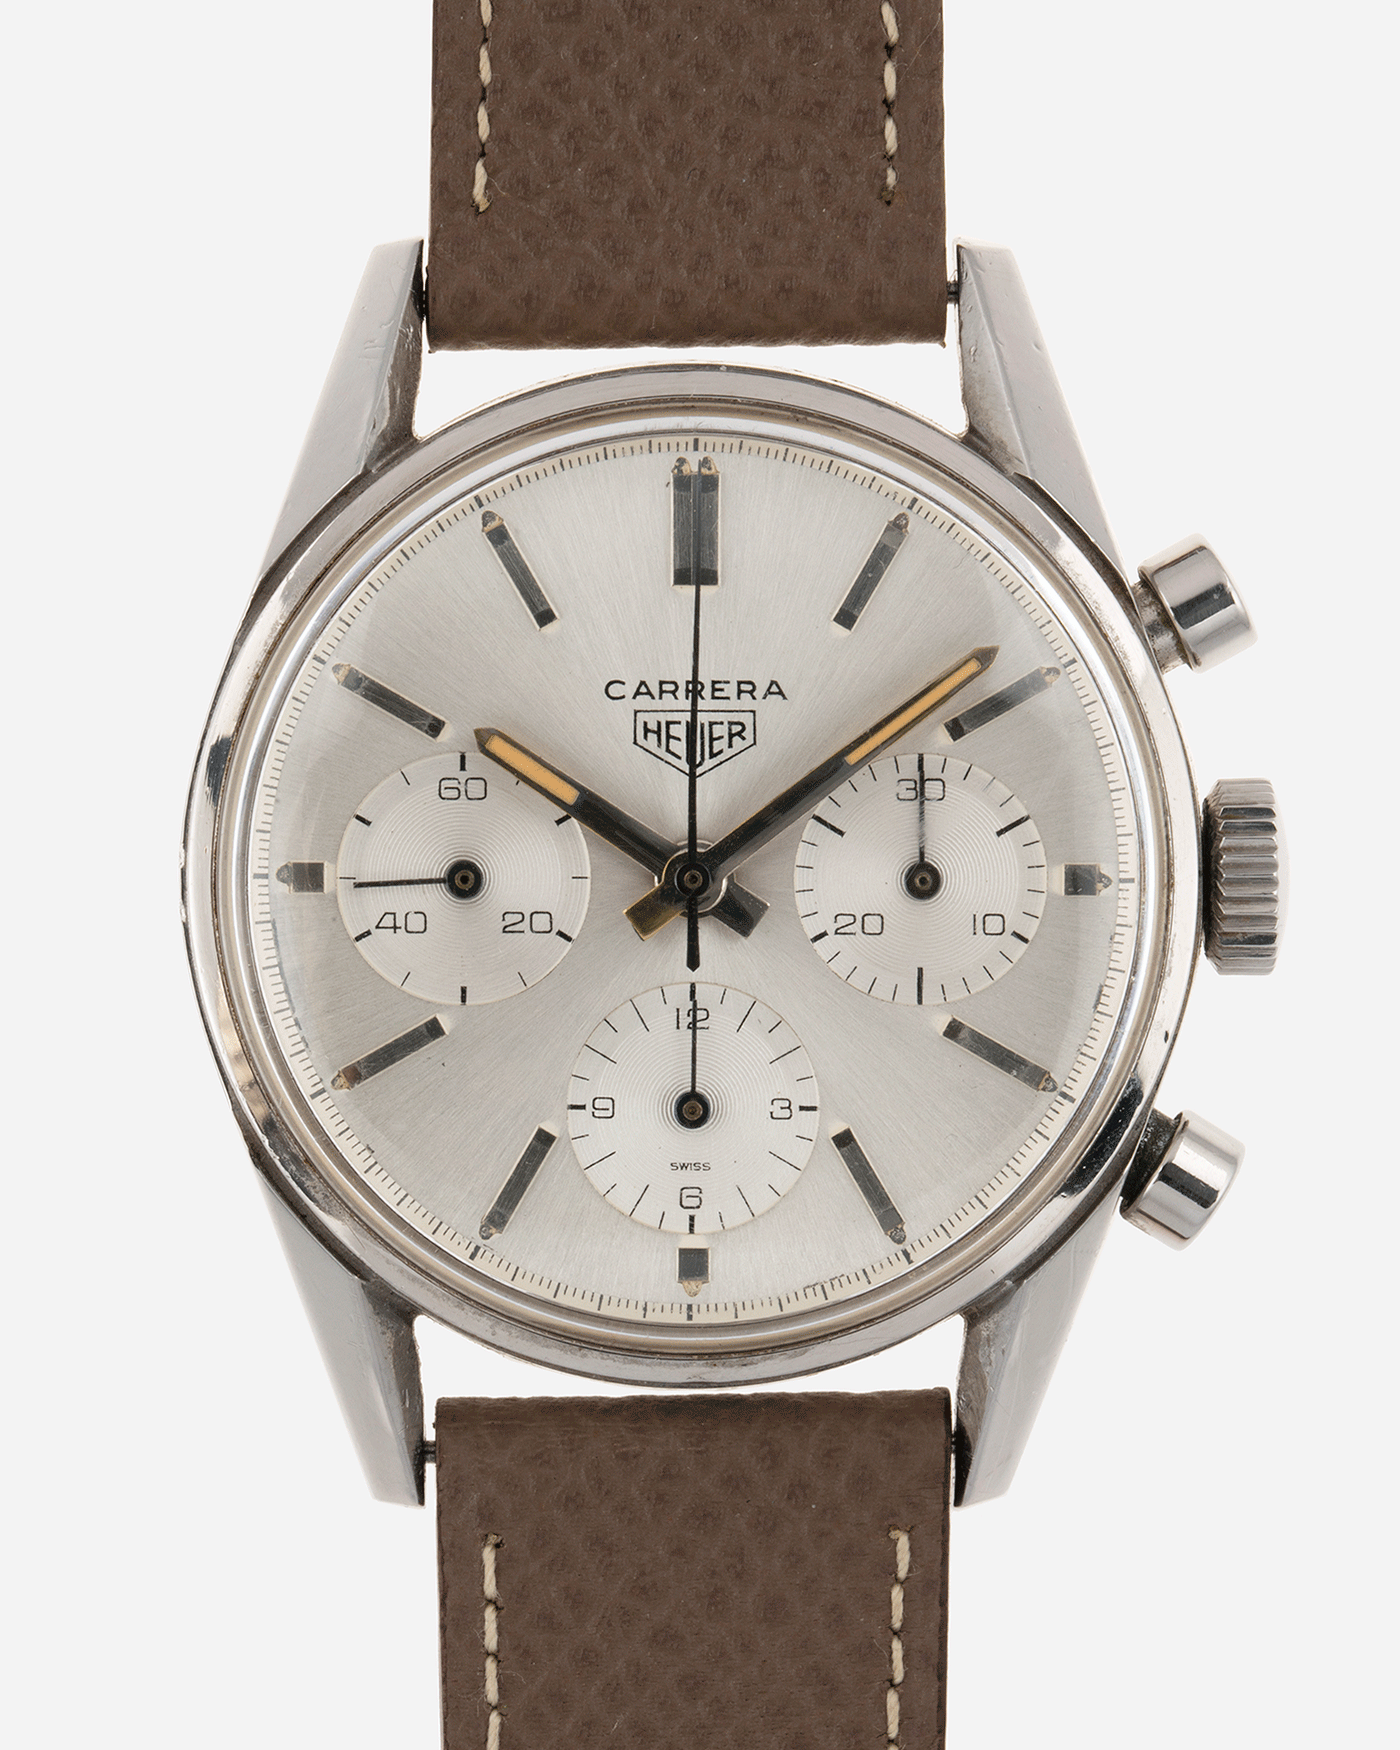 Brand: Heuer Year: 1960's Model: Carrera Reference Number: 2447S Material: Stainless Steel Movement: Valjoux 72 Case Diameter: 36mm Lug Width: 18mm Bracelet/Strap: Nostime Grained Taupe